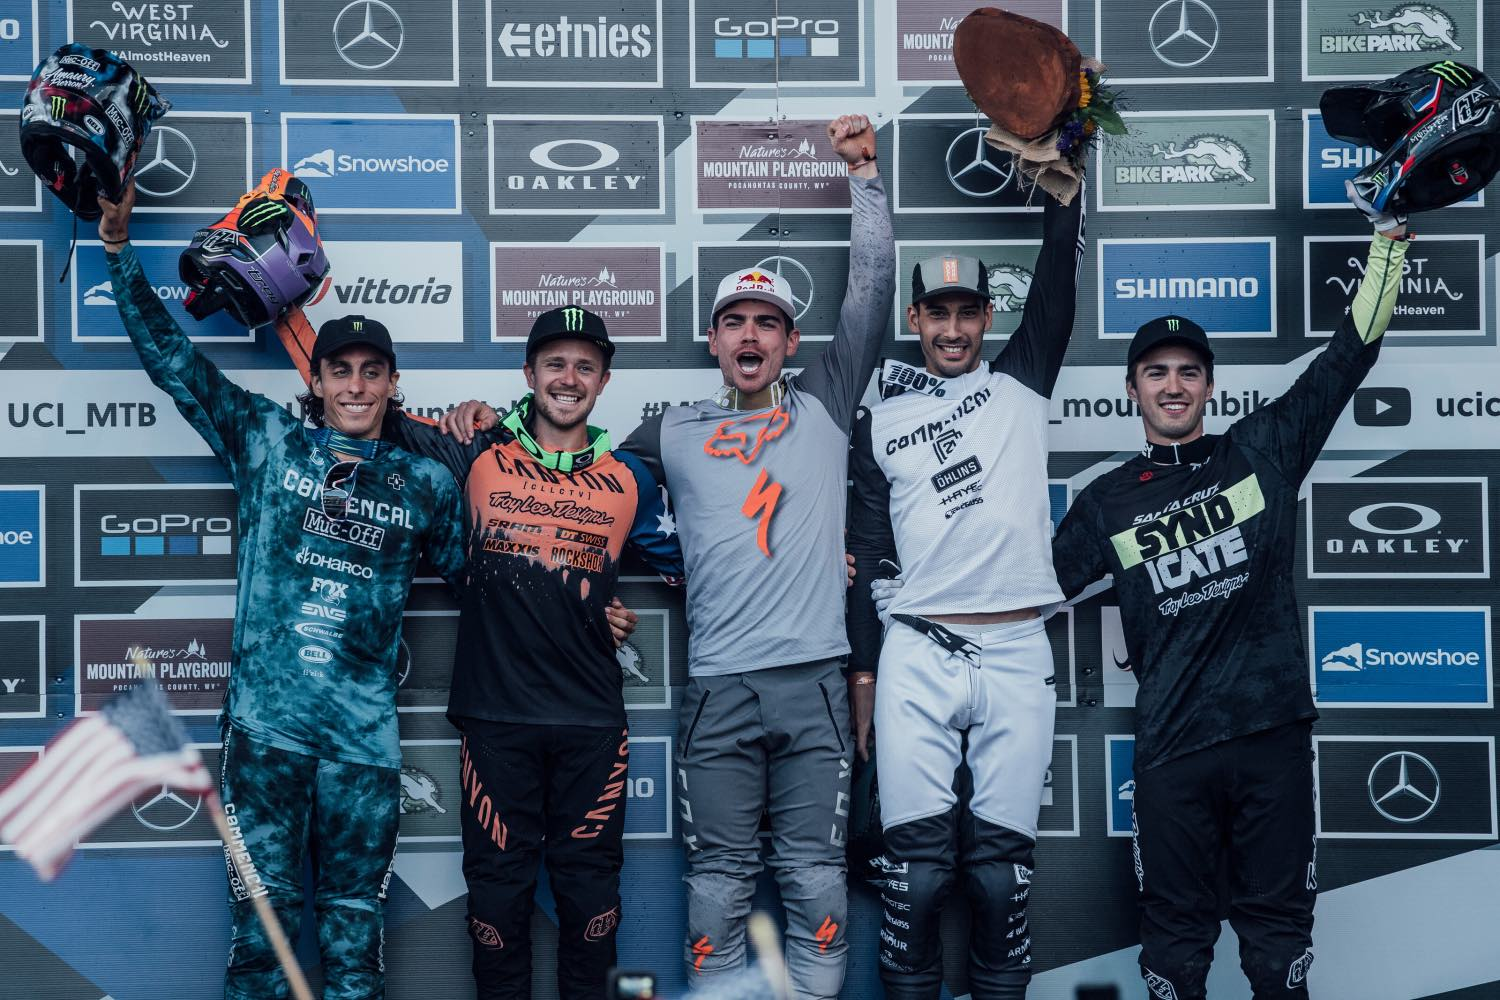 Men's podium from the final round of the 2021 UCI Downhill MTB World Cup